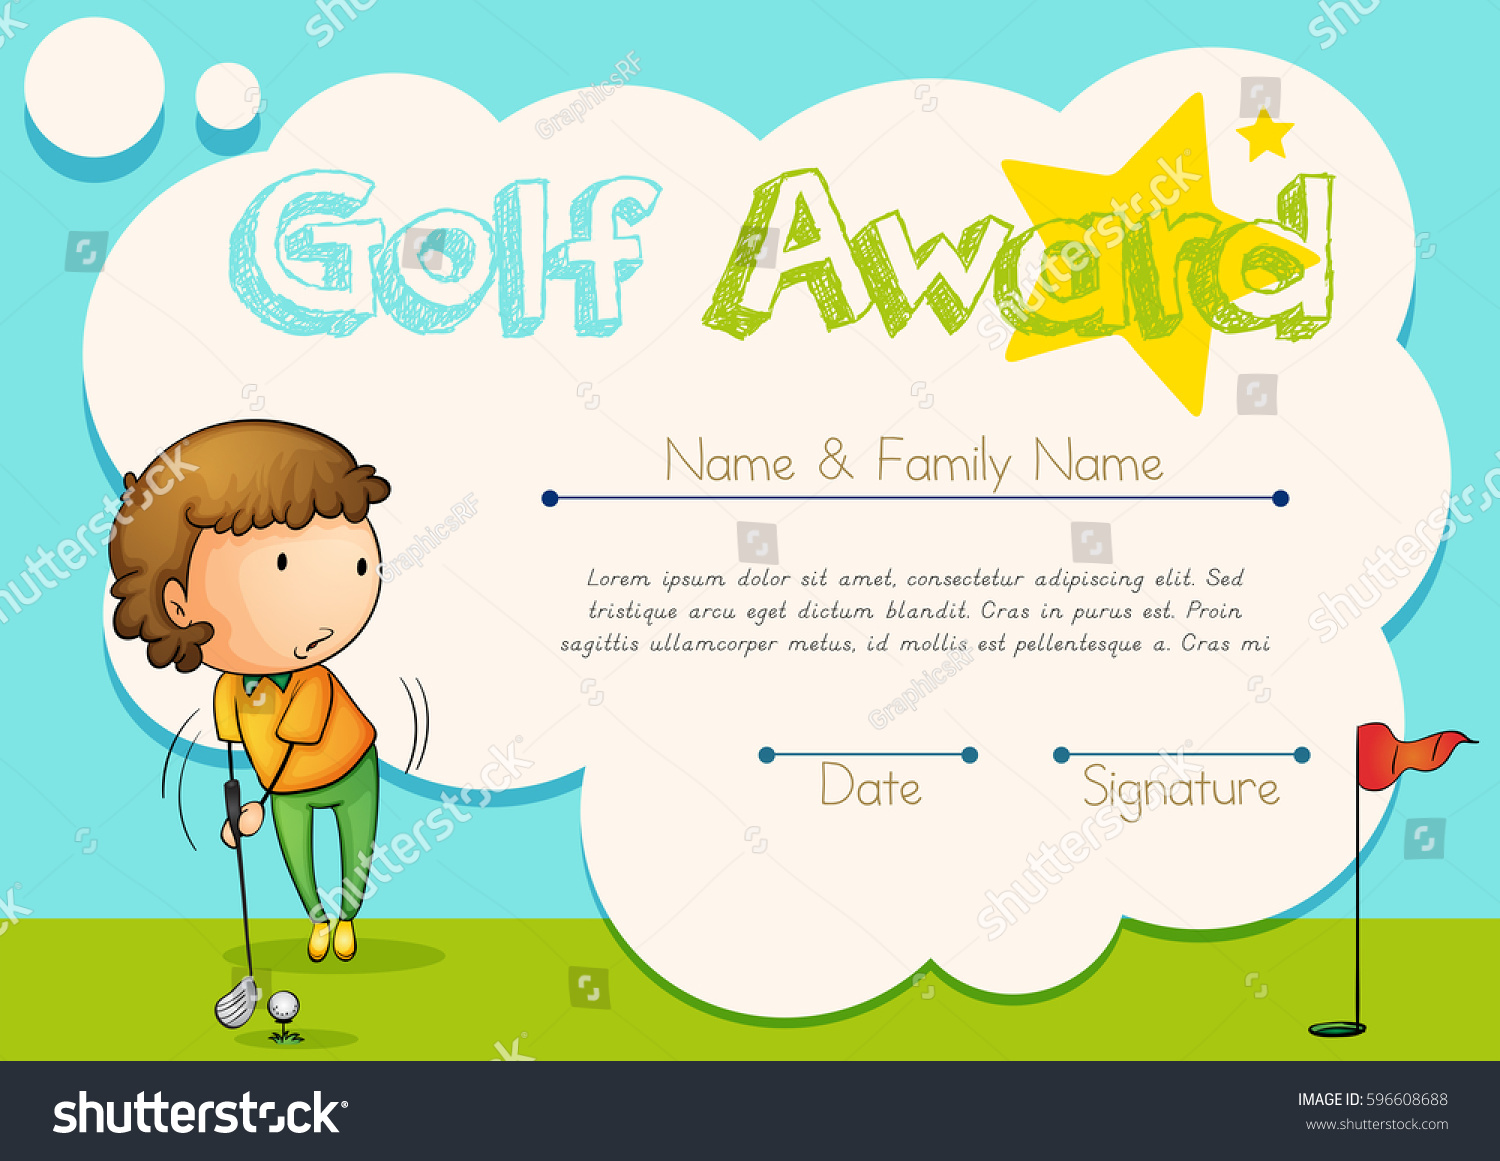 Golf Certificate Templates For Word